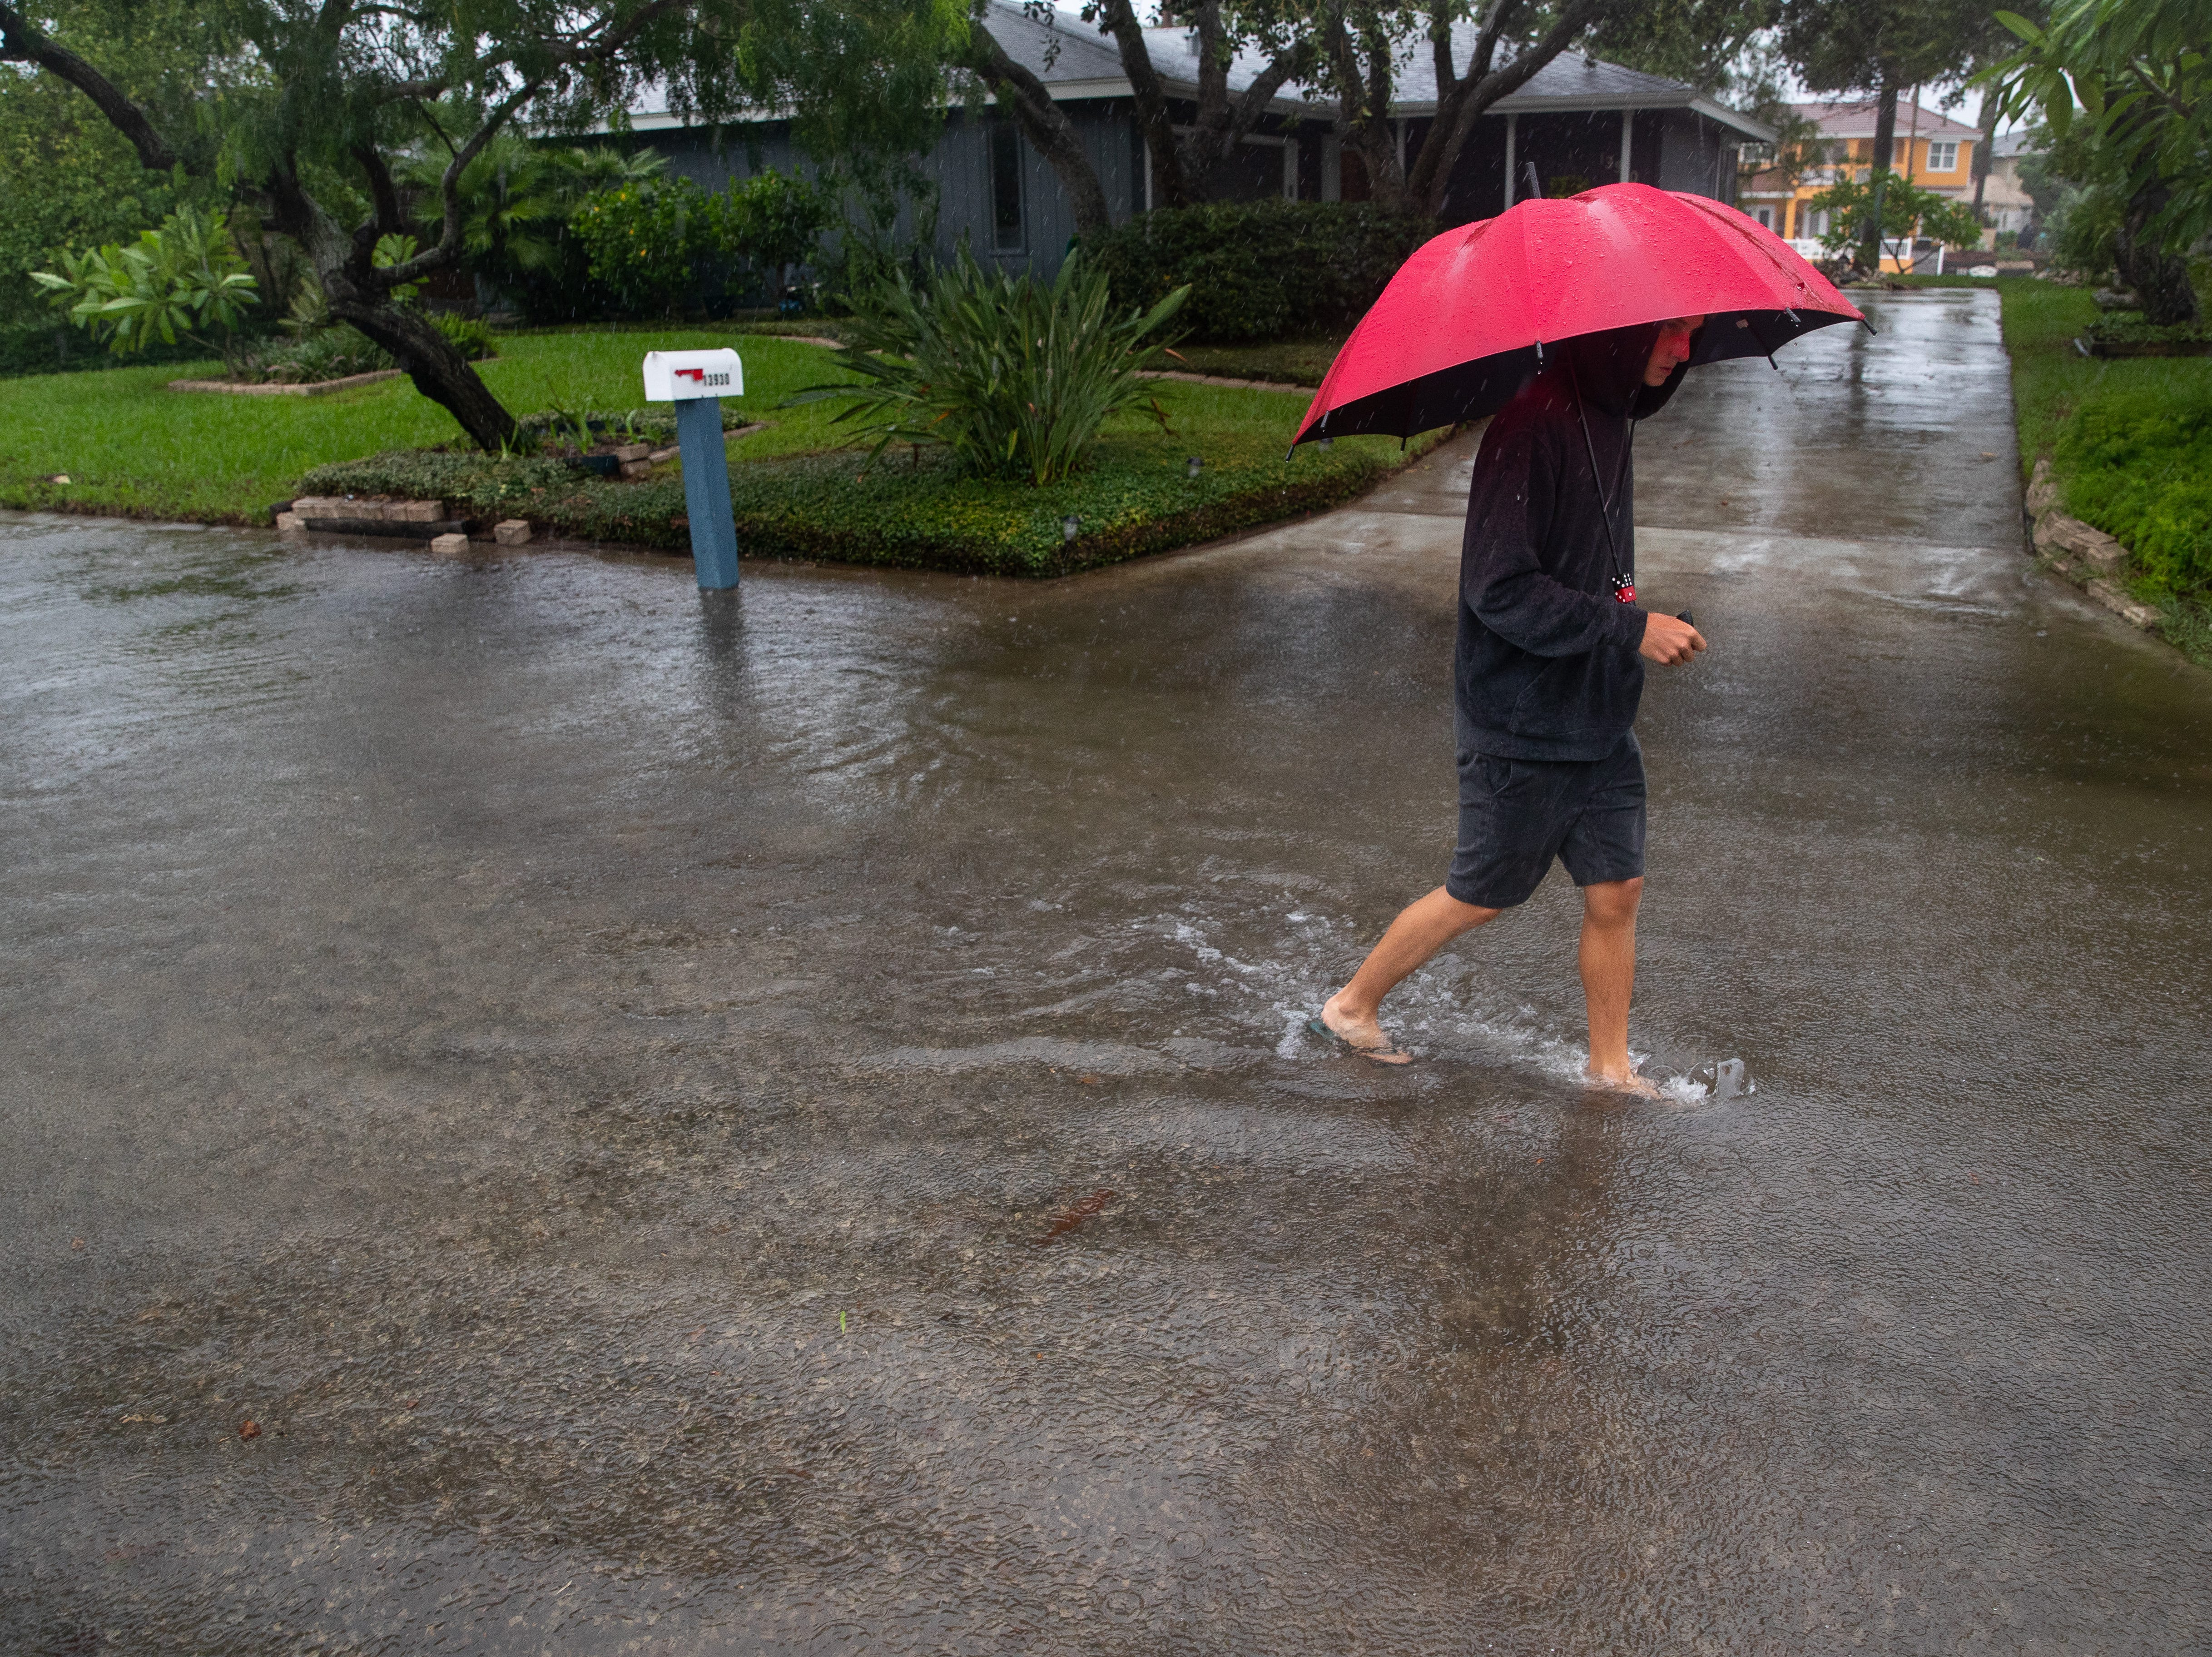 A person walks down a flooded North Cabana Street on North Padre Island in Corpus Christi as heavy rains fall on Saturday, Sept. 15, 2018.